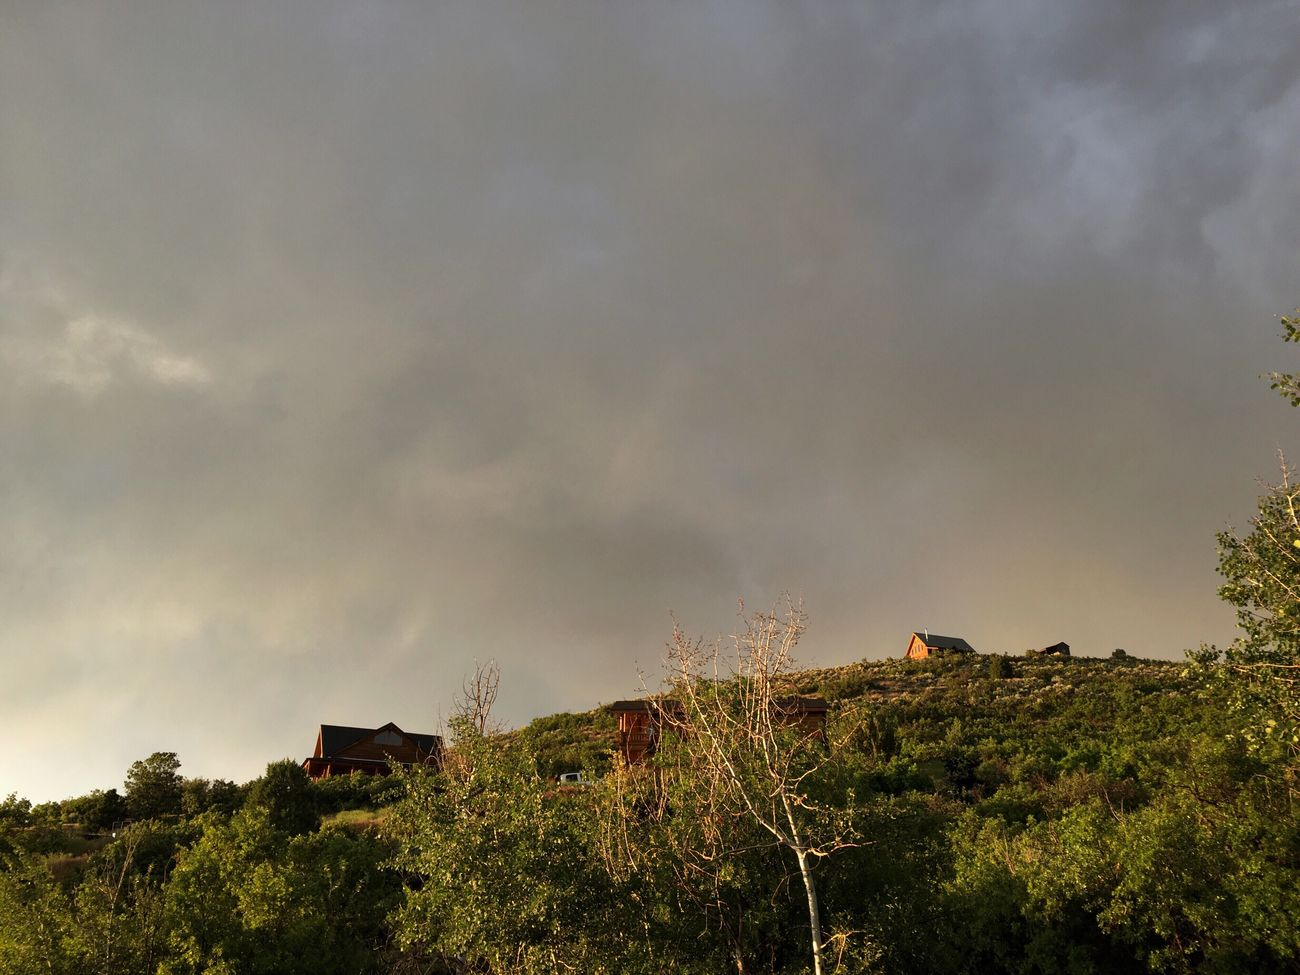 storms rolling through this evening.